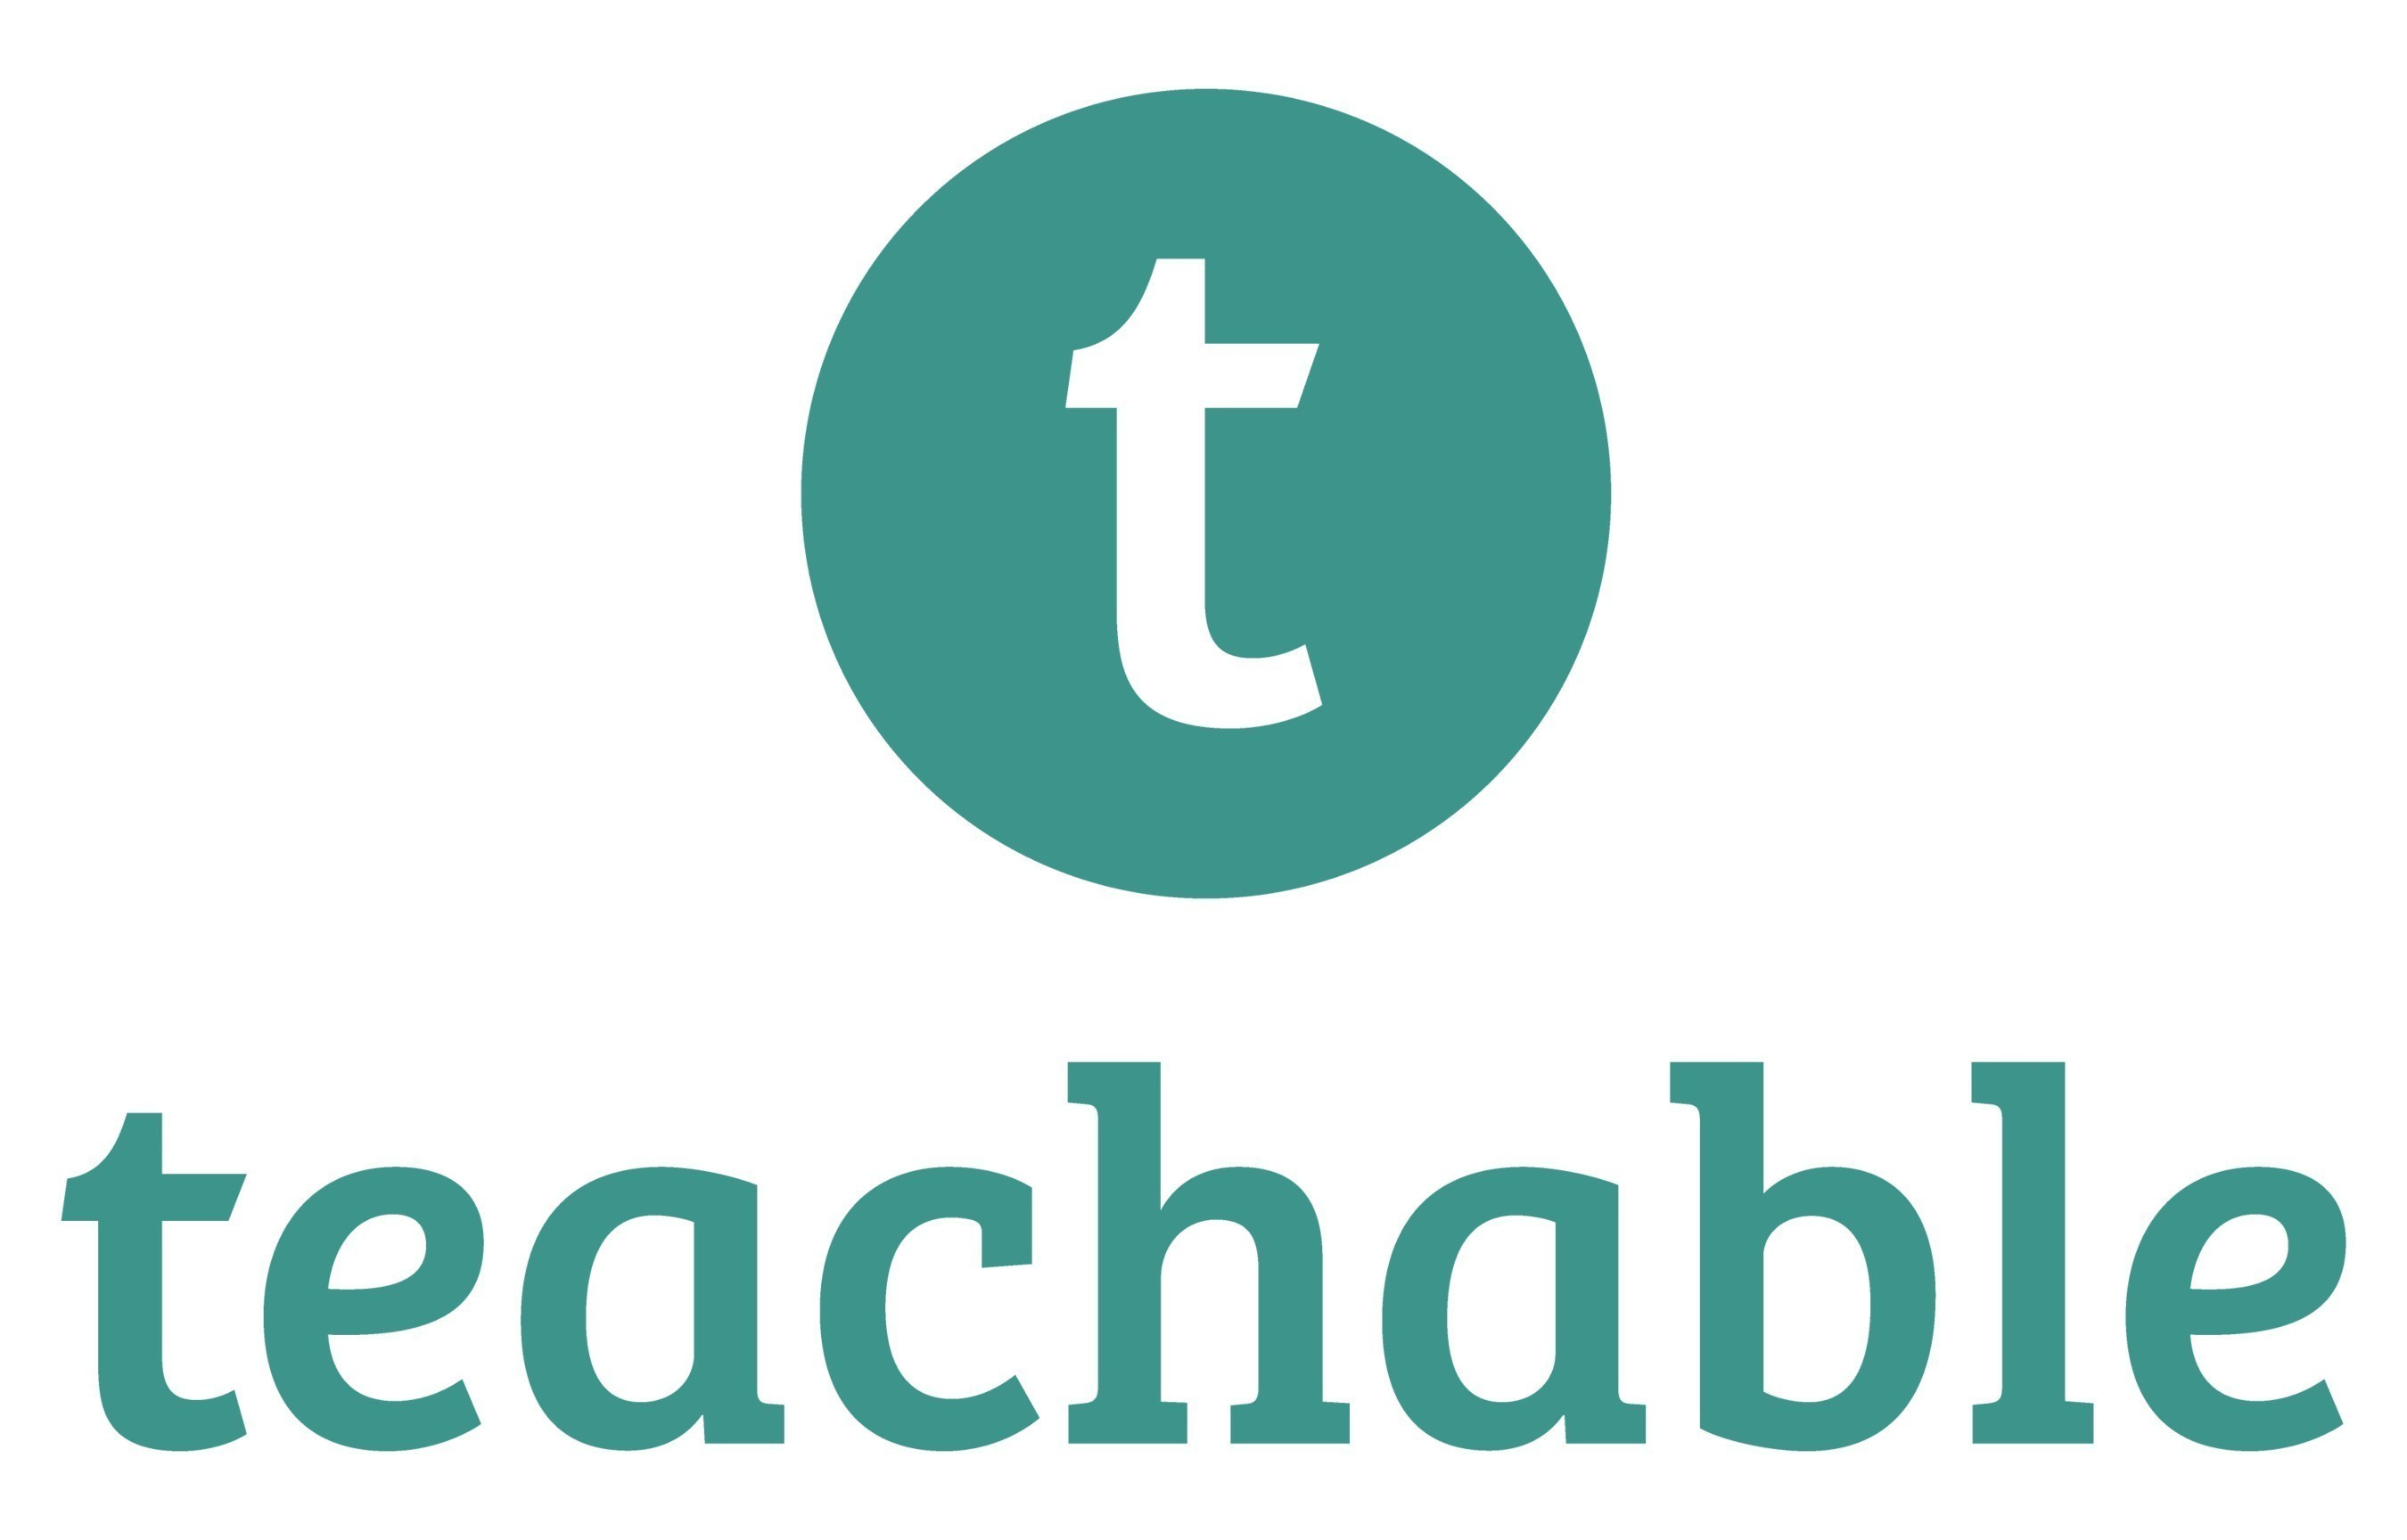 publish a guest post on teachable teachable. com